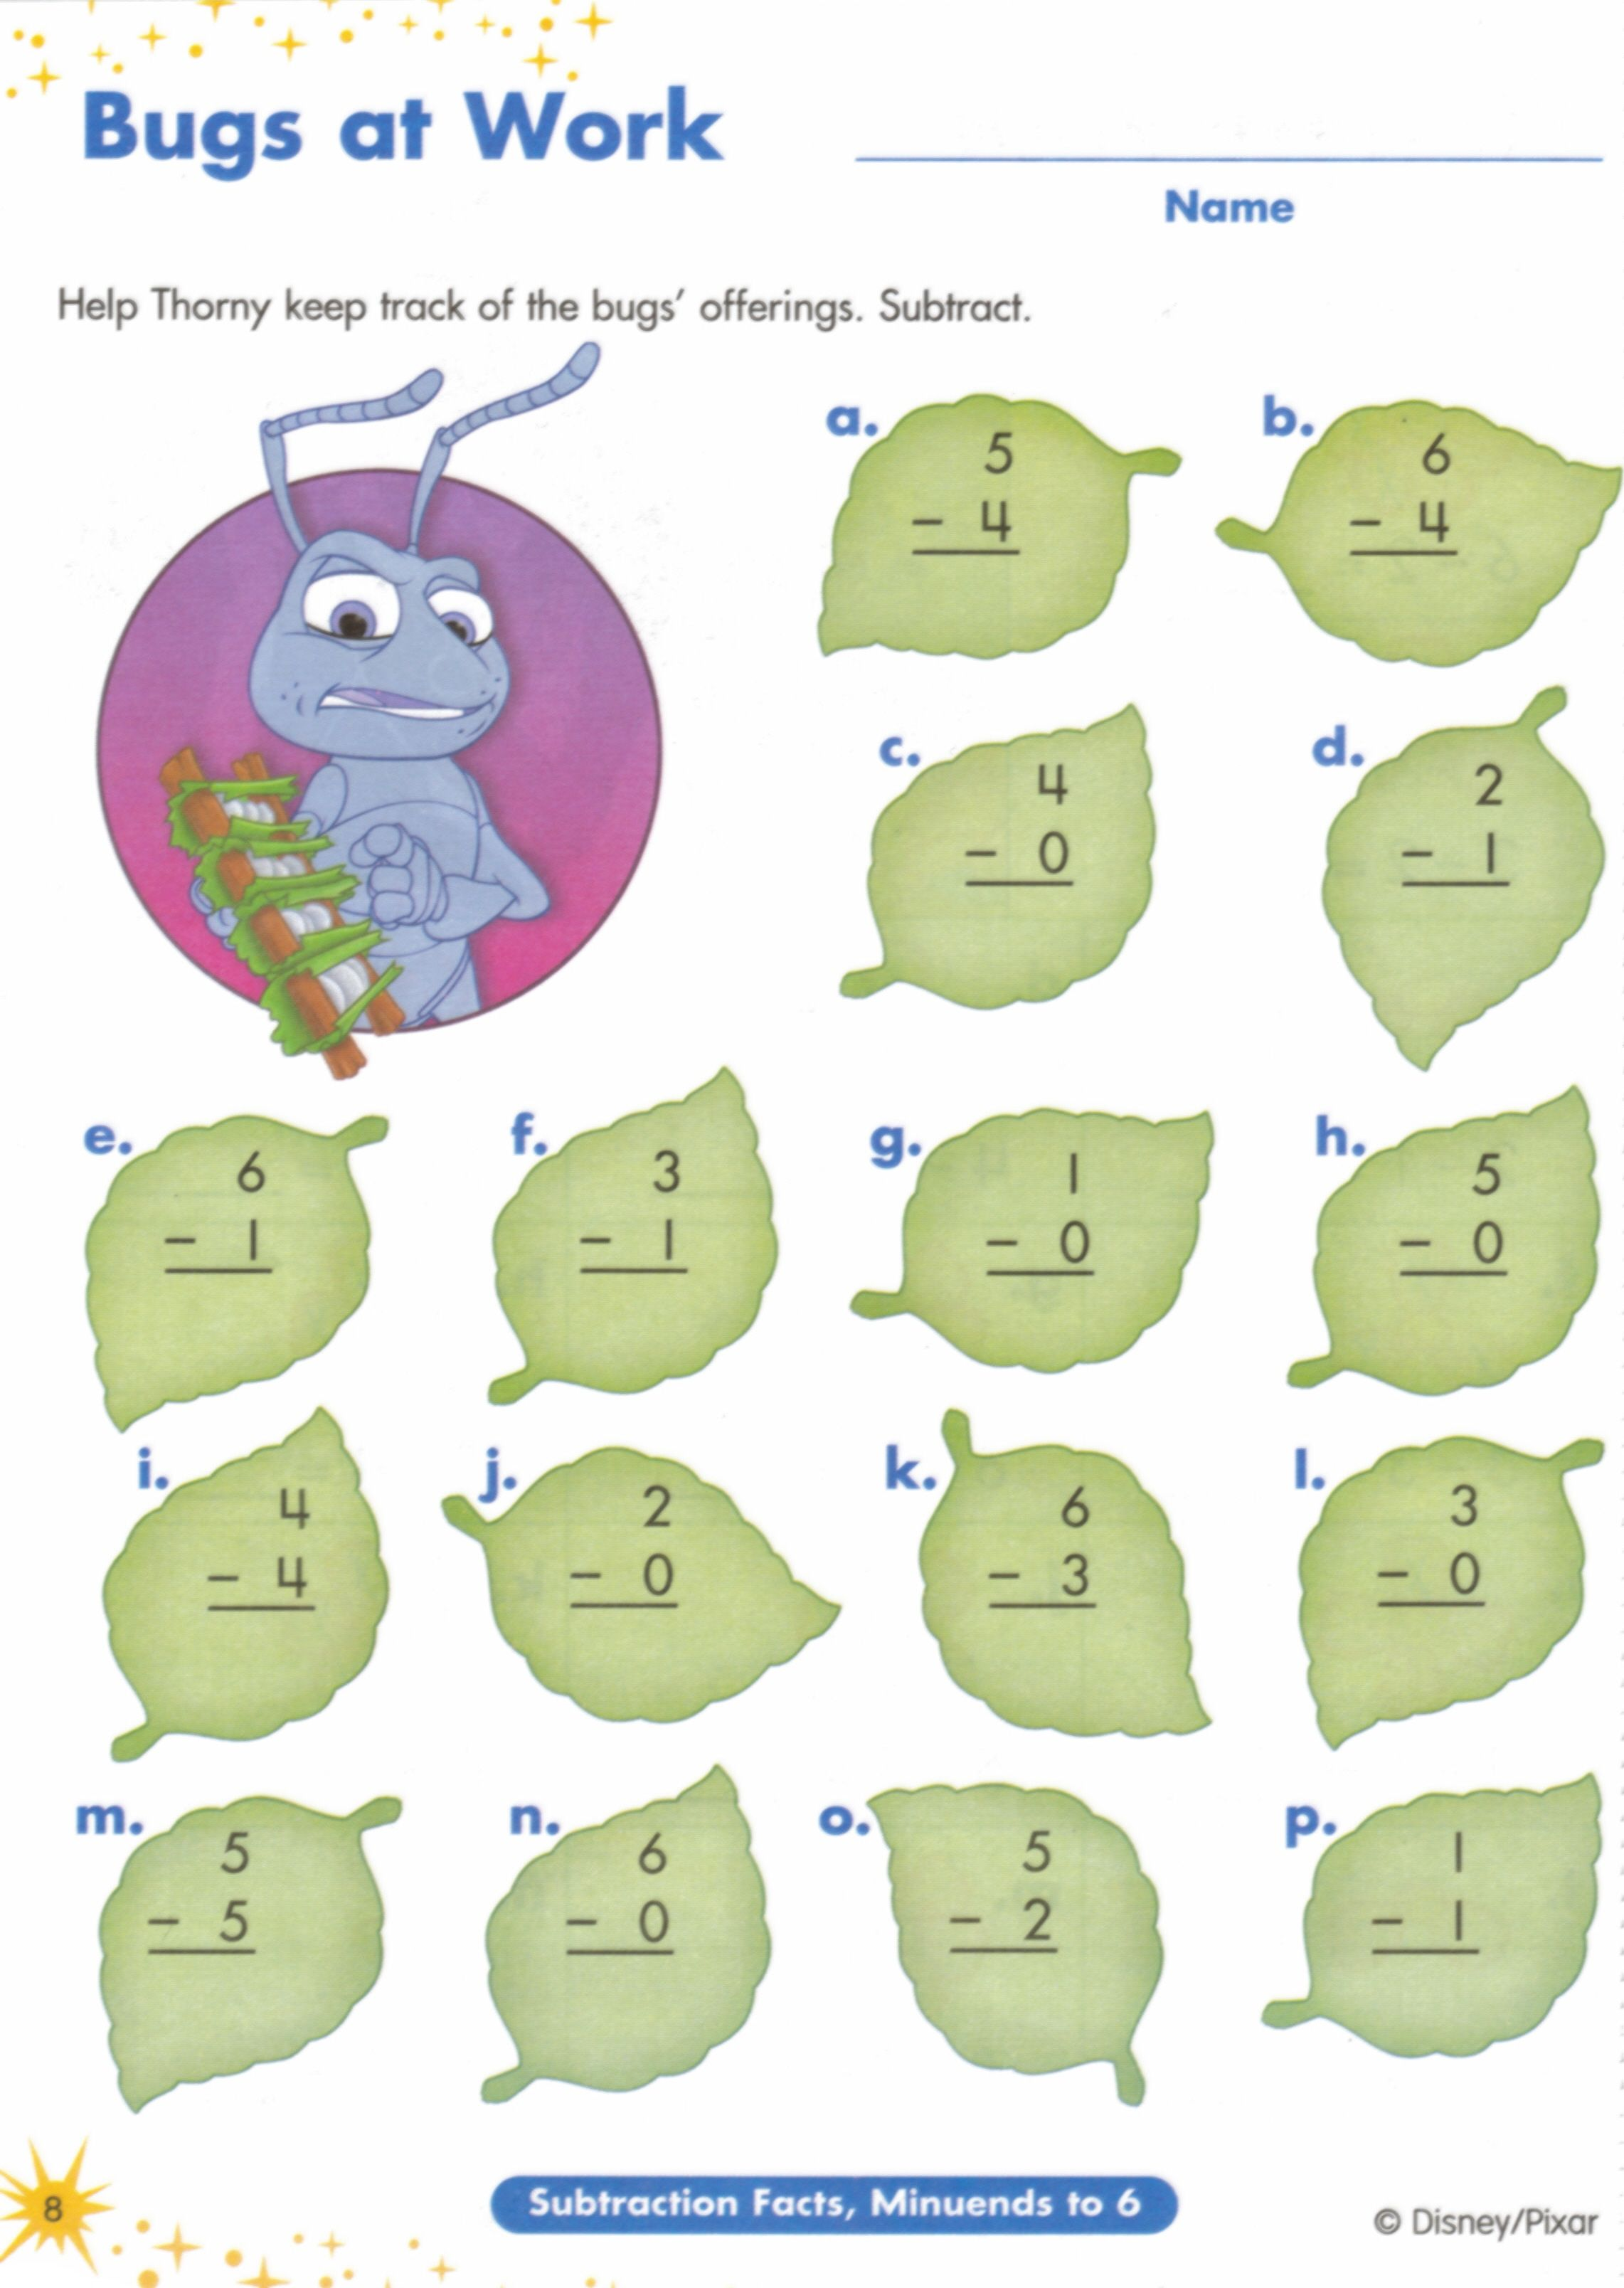 Weirdmailus  Outstanding  Images About Worksheets On Pinterest  Fun Facts For Kids  With Great  Images About Worksheets On Pinterest  Fun Facts For Kids Earth Day Worksheets And Jungles With Appealing Temperature Conversion Worksheet Kelvin Also Midpoint Formula Worksheet With Answers In Addition Demonstrative Pronouns Worksheet And Polyatomic Compounds Names And Formulas Worksheet As Well As Word Work Worksheets Additionally Biology Graphing Practice Worksheets From Pinterestcom With Weirdmailus  Great  Images About Worksheets On Pinterest  Fun Facts For Kids  With Appealing  Images About Worksheets On Pinterest  Fun Facts For Kids Earth Day Worksheets And Jungles And Outstanding Temperature Conversion Worksheet Kelvin Also Midpoint Formula Worksheet With Answers In Addition Demonstrative Pronouns Worksheet From Pinterestcom